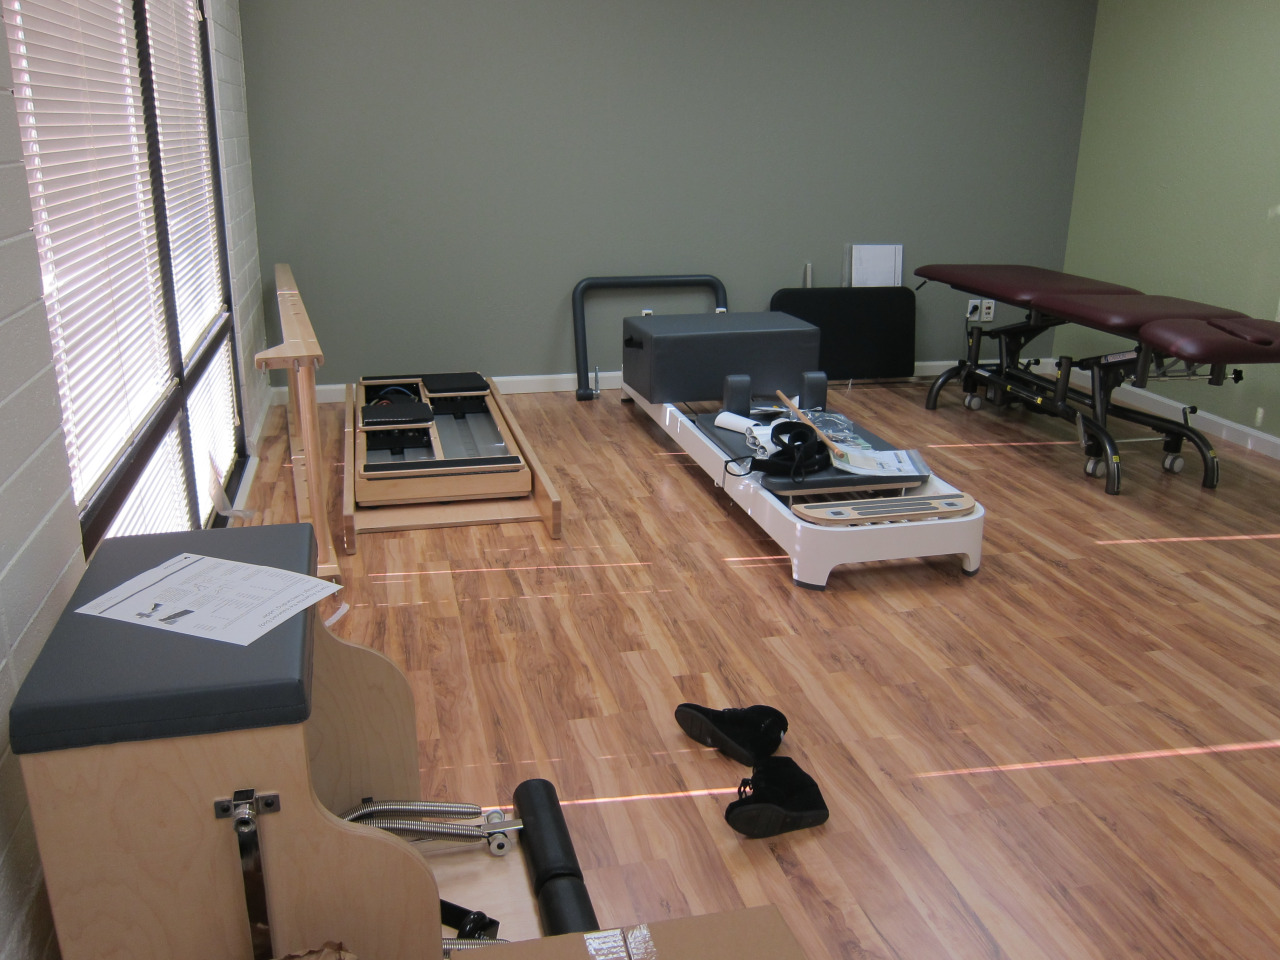 Pilates equipment came in!  The guys that delivered were so rough with everything.  They were tossing boxes around (almost hit my daughter with a flying box), dropped some stuf,f scuffed my wall, and almost fell.  It was scary to watch.  We were lucky that we were able to meet them too.  They were supposed to come between 8:30 and 1:30 .. of course they arrived at 1:45.     High-low table came in on the same day.  I wasn't going to get one but I found a good deal on a very, very gently used table.  I had to just accept that it was going to be burgundy.  I would have chosen grey.  Oh well, at least it's a color that matches.     Now it's time to assemble everything.  The brothers are coming this weekend to help me assemble the ikea furniture and all the pilates equipment.